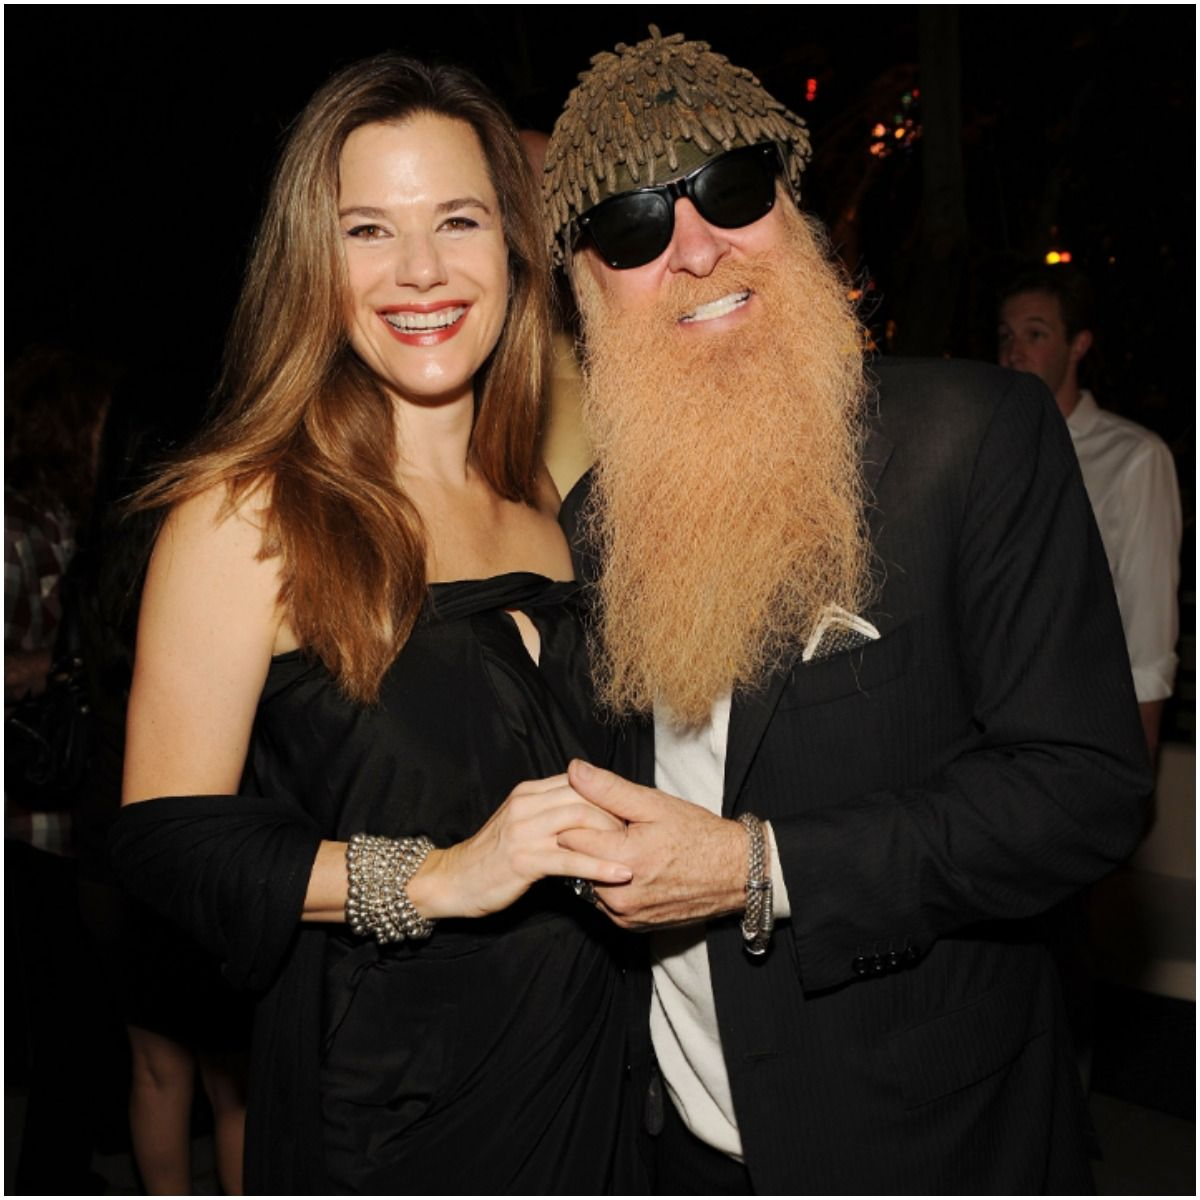 Billy Gibbons and his wife Gilligan Stillwater